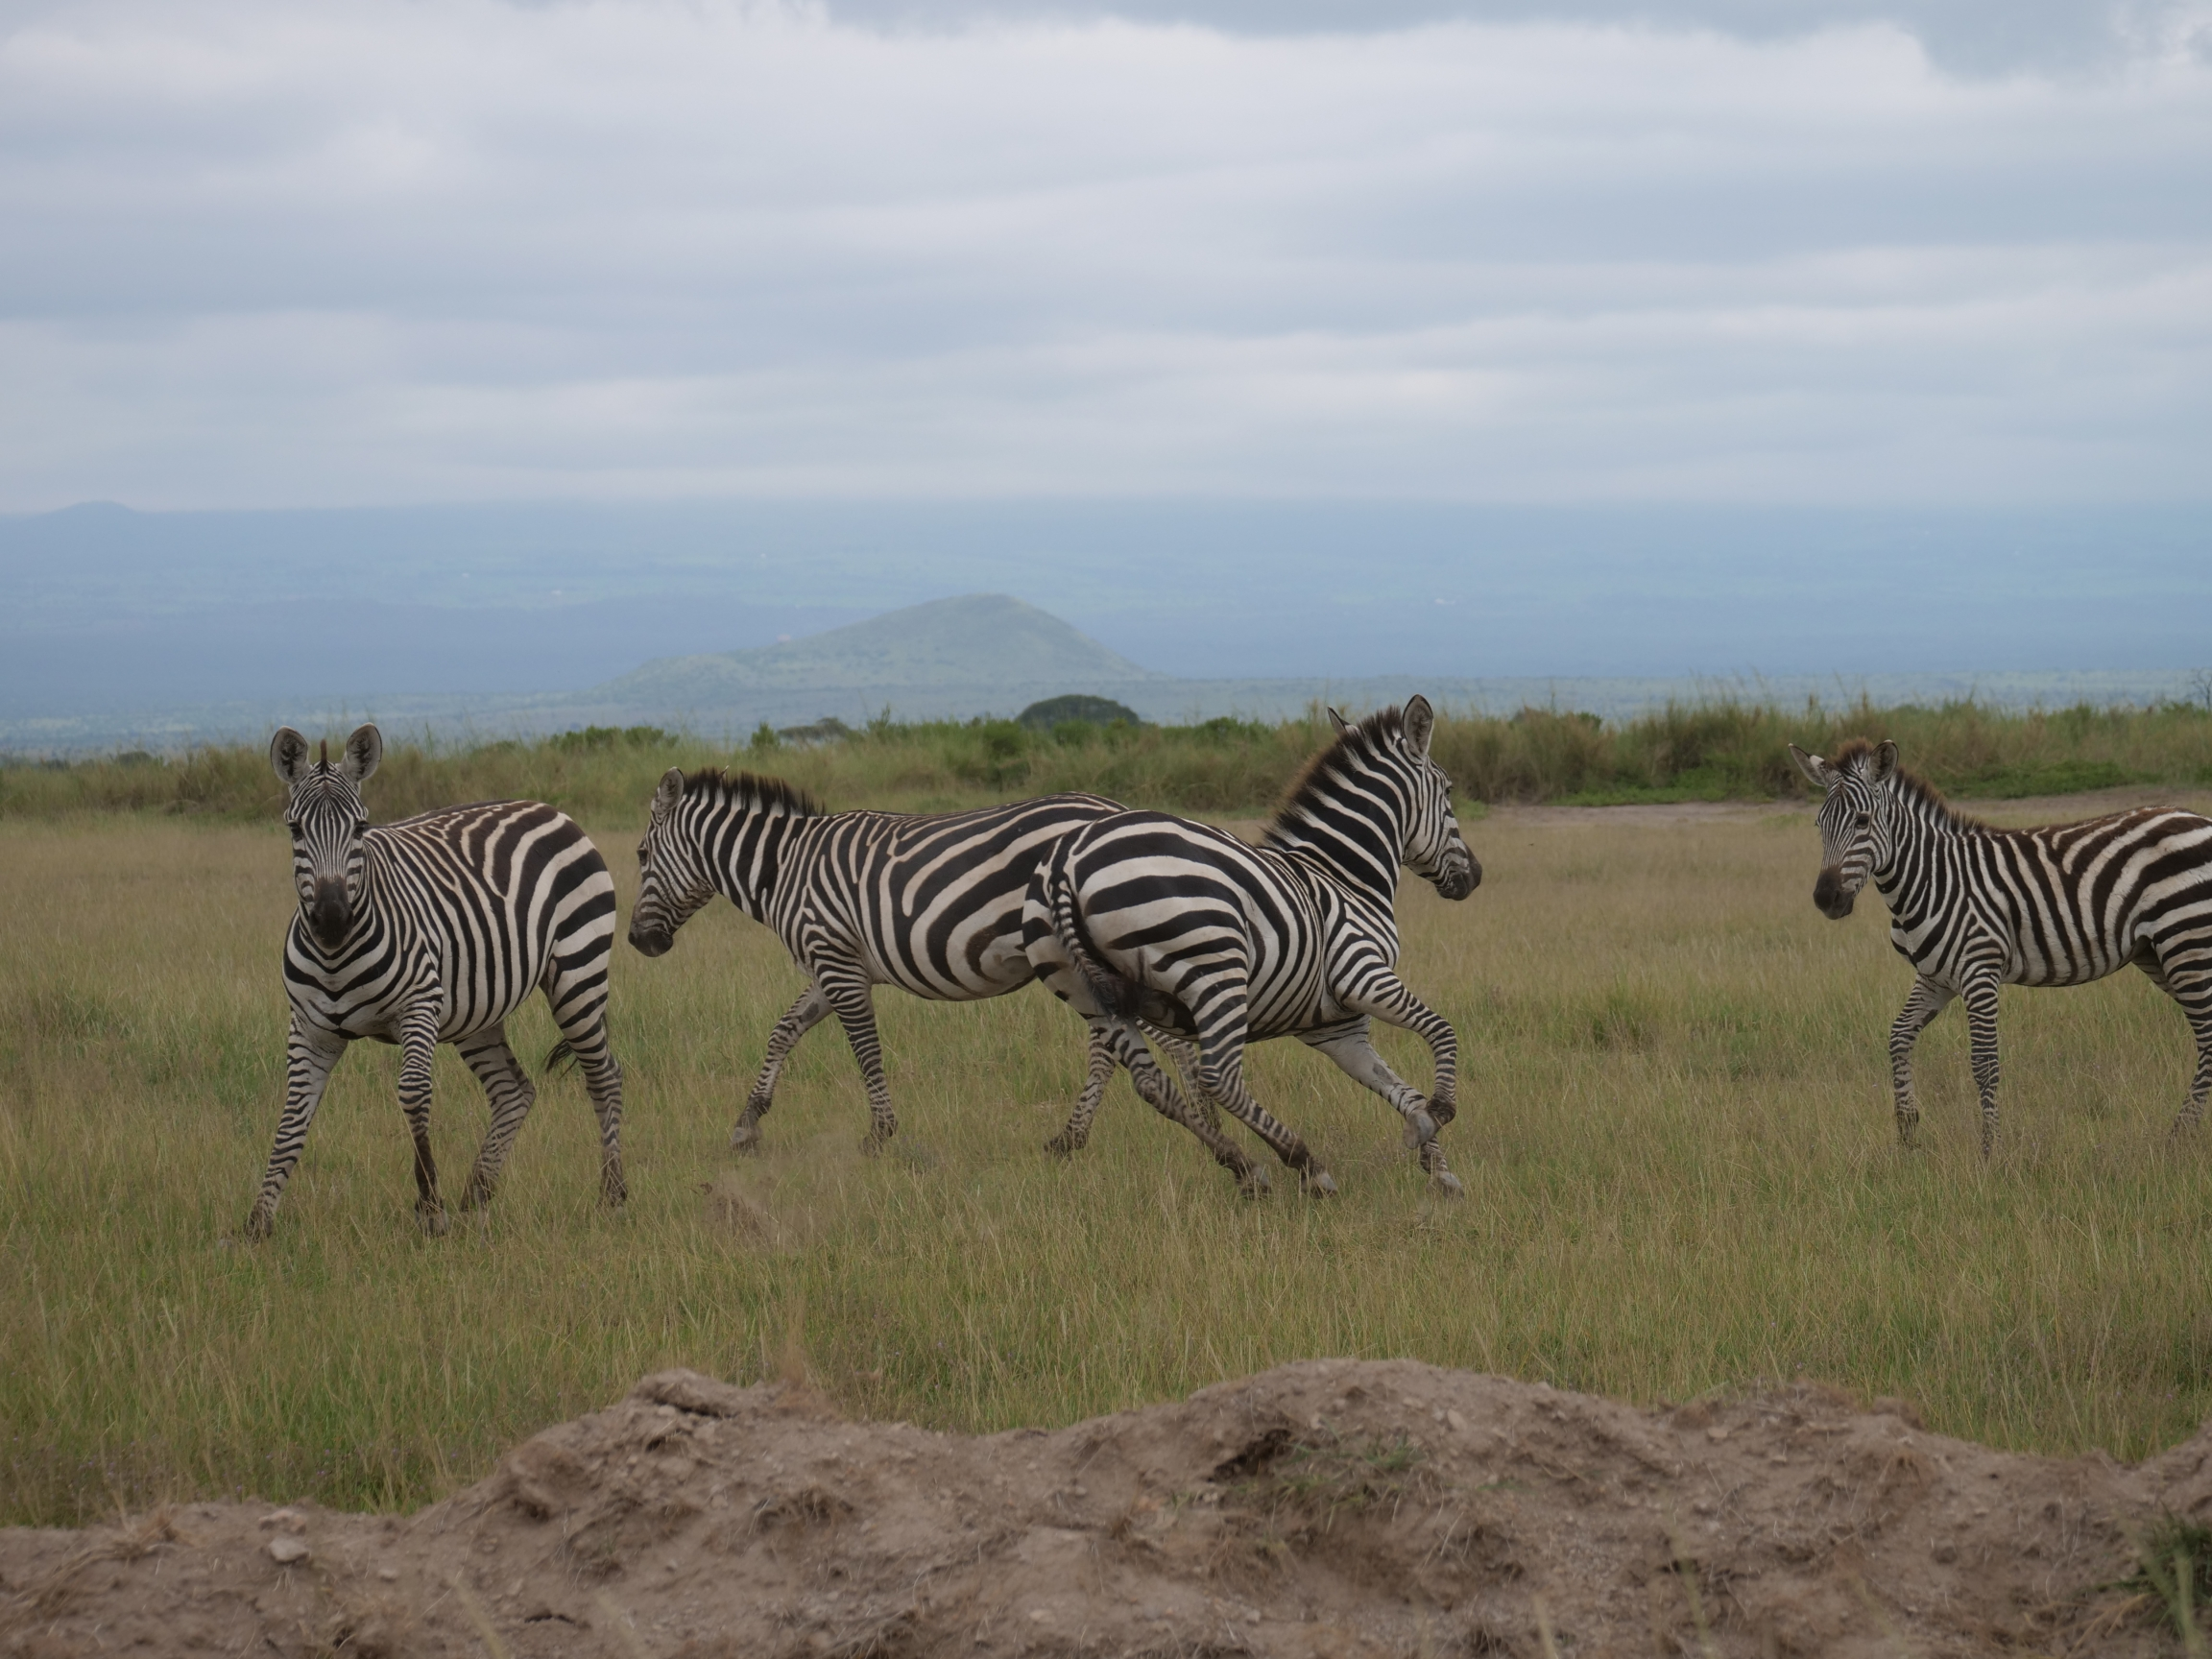 Four zebras frolick in the grass on a sunny day